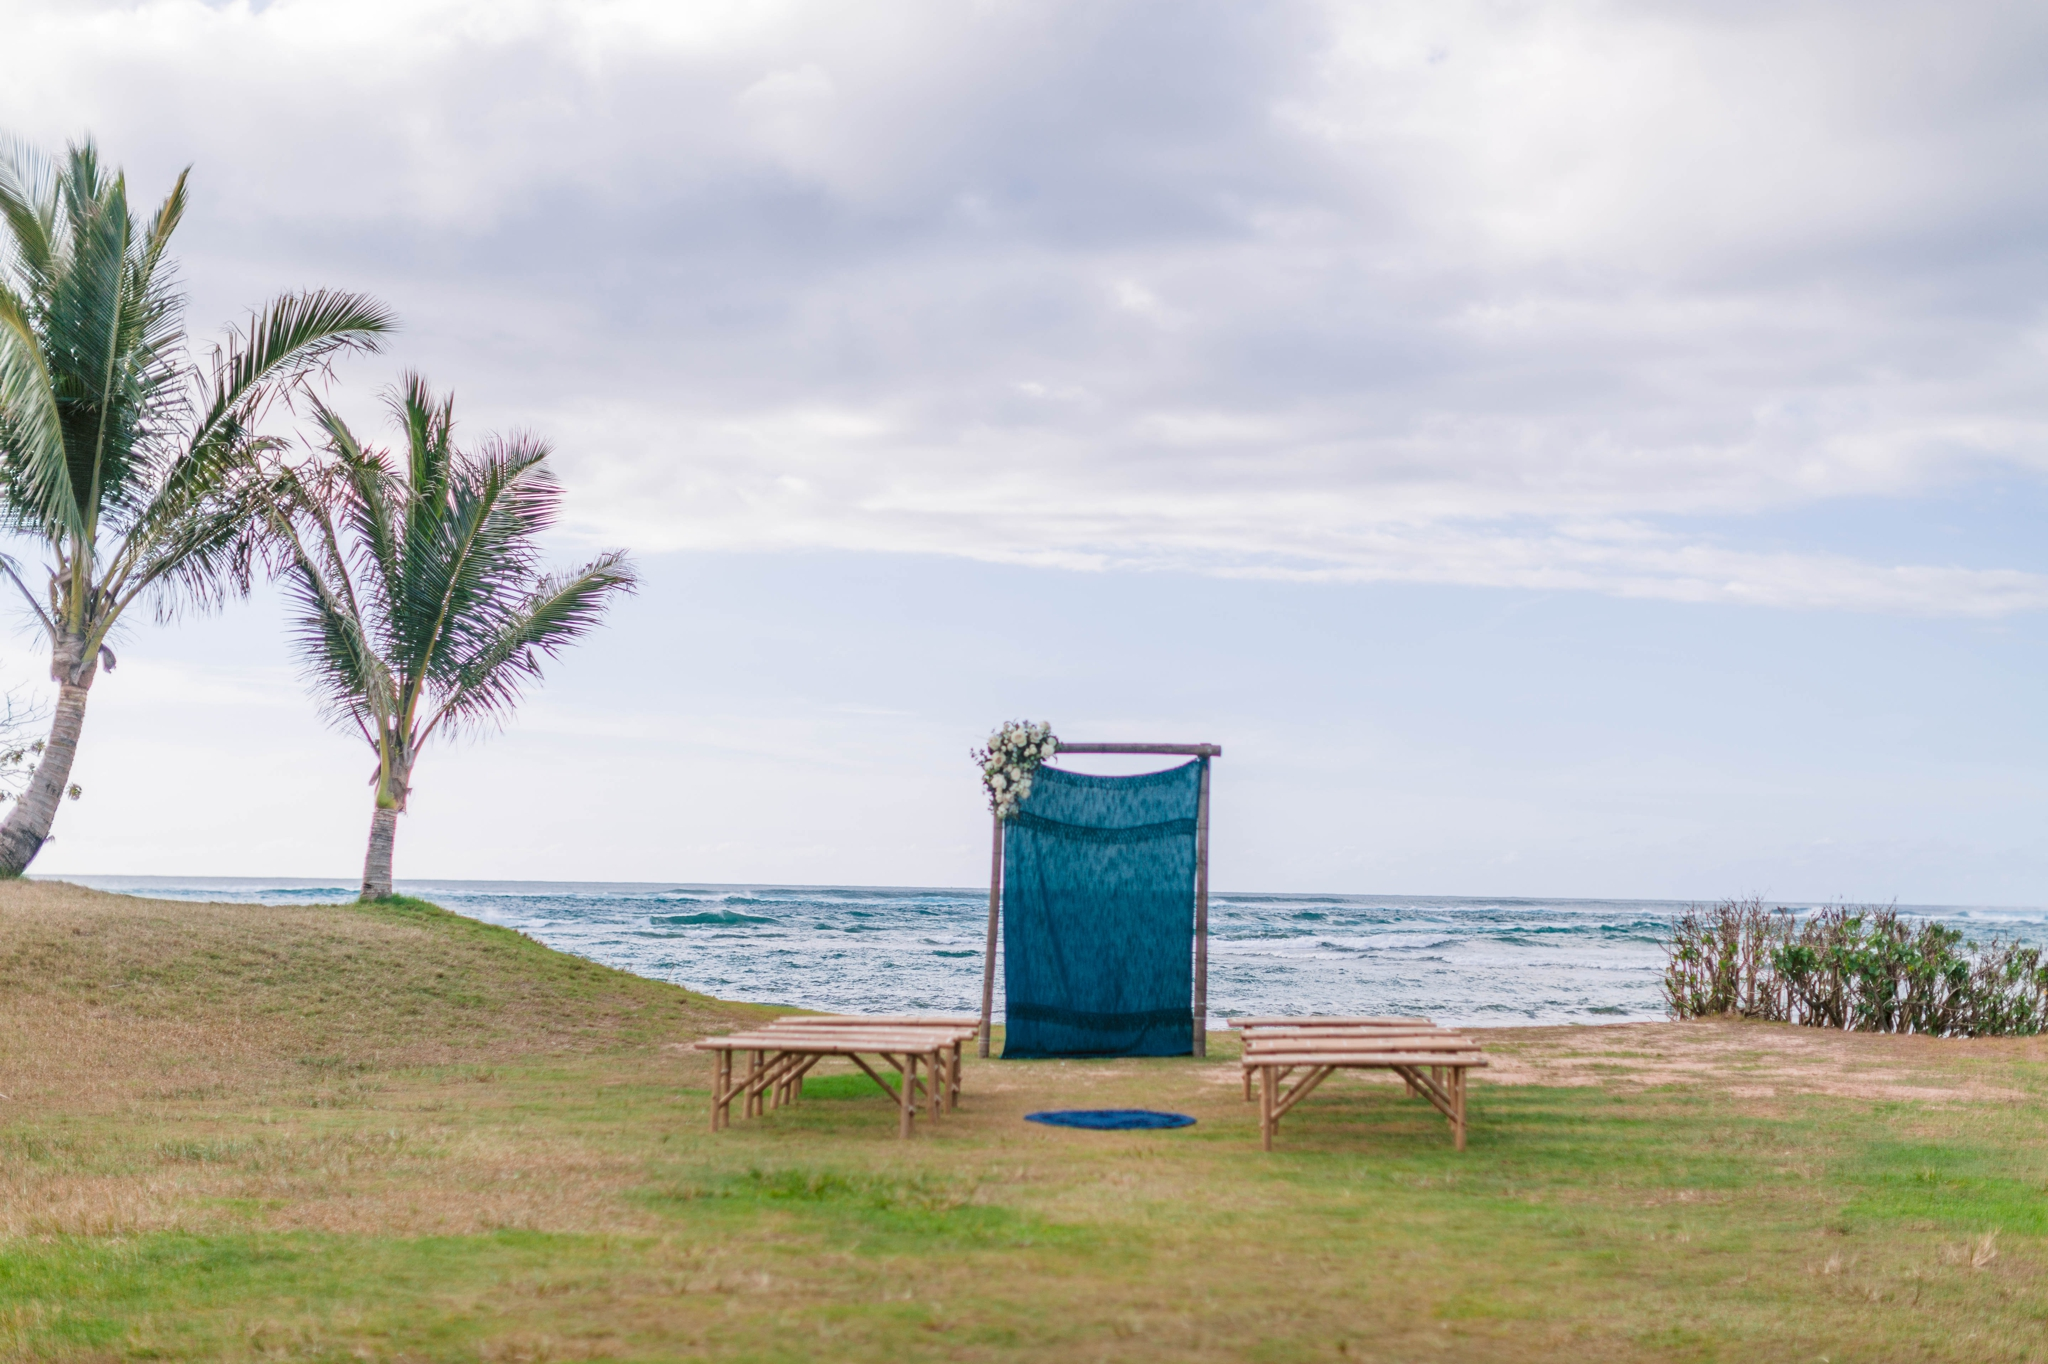 Ceremony Arch with Fabric in front of the ocean - Ana + Elijah - Wedding at Loulu Palm in Haleiwa, HI - Oahu Hawaii Wedding Photographer